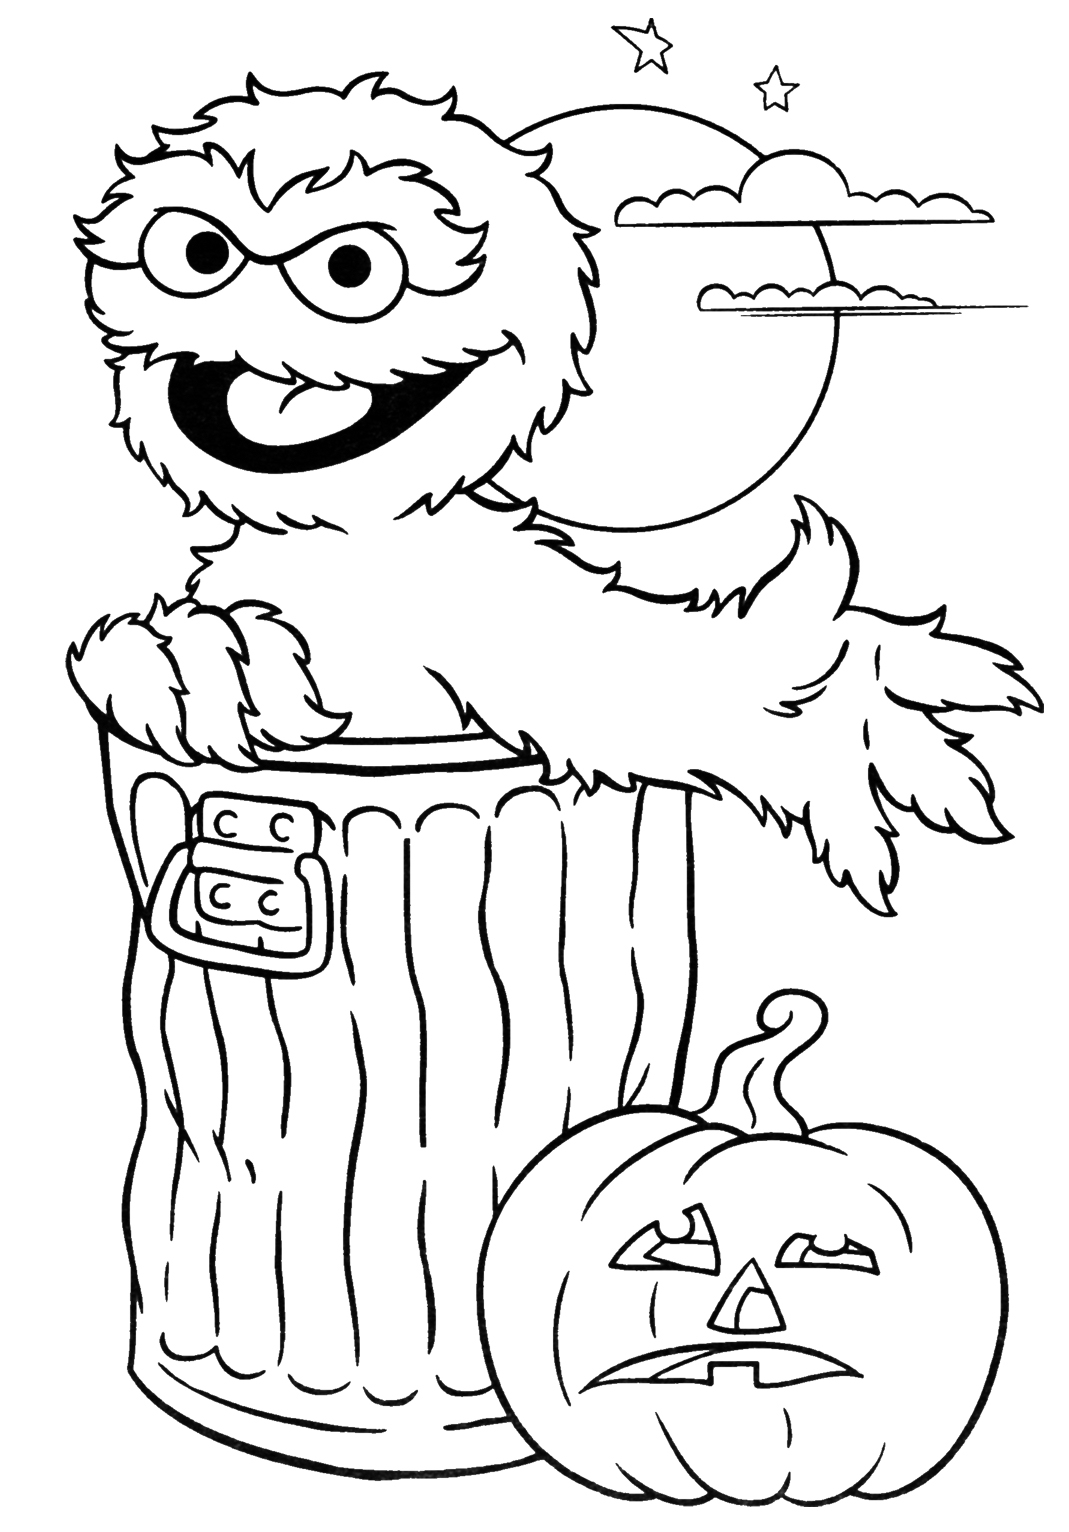 50 free printable halloween coloring pages for kids